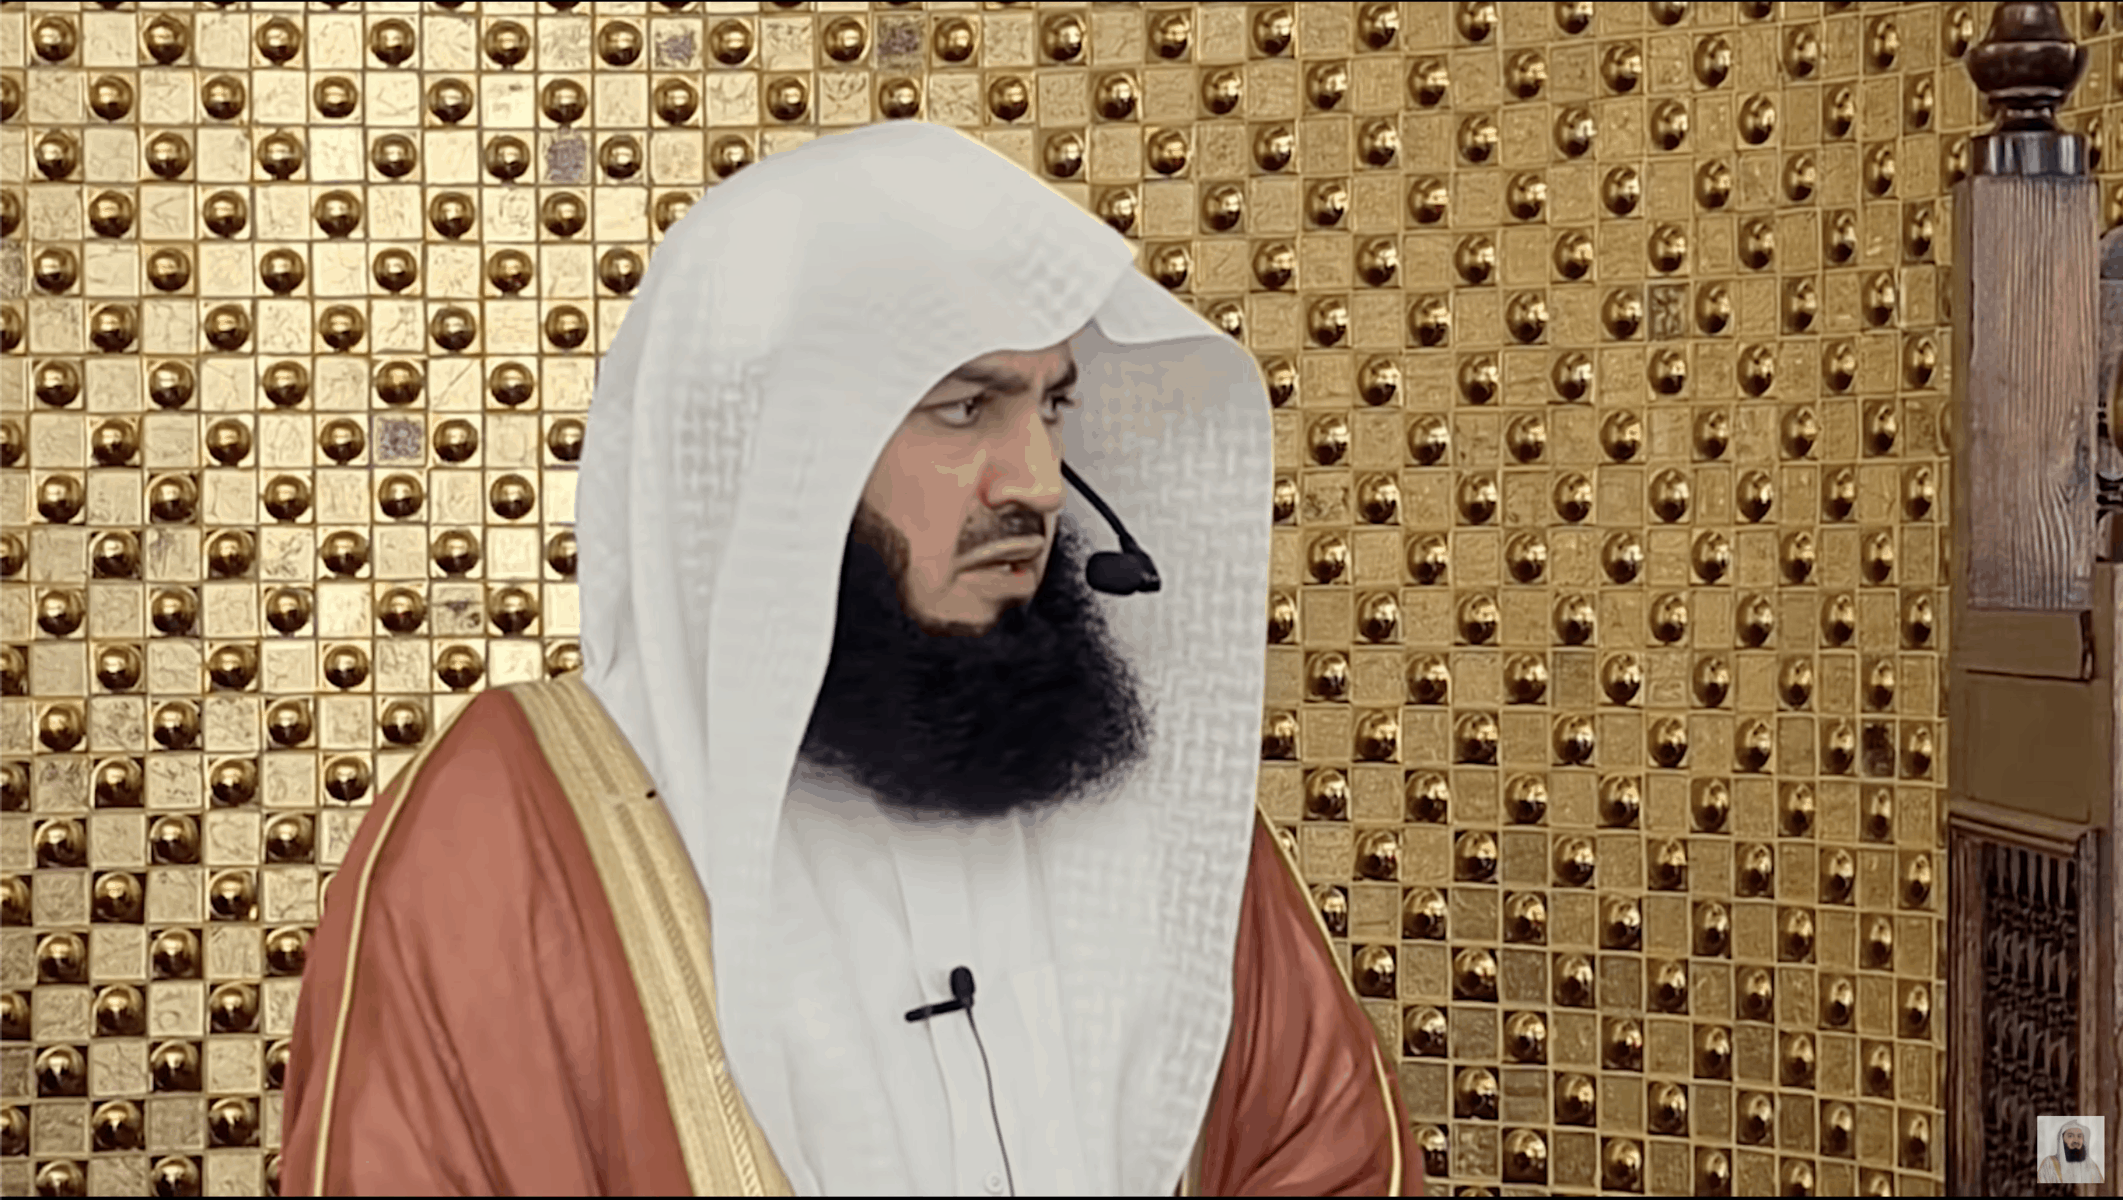 Ismail ibn Musa Menk – The Traps of Shaitan